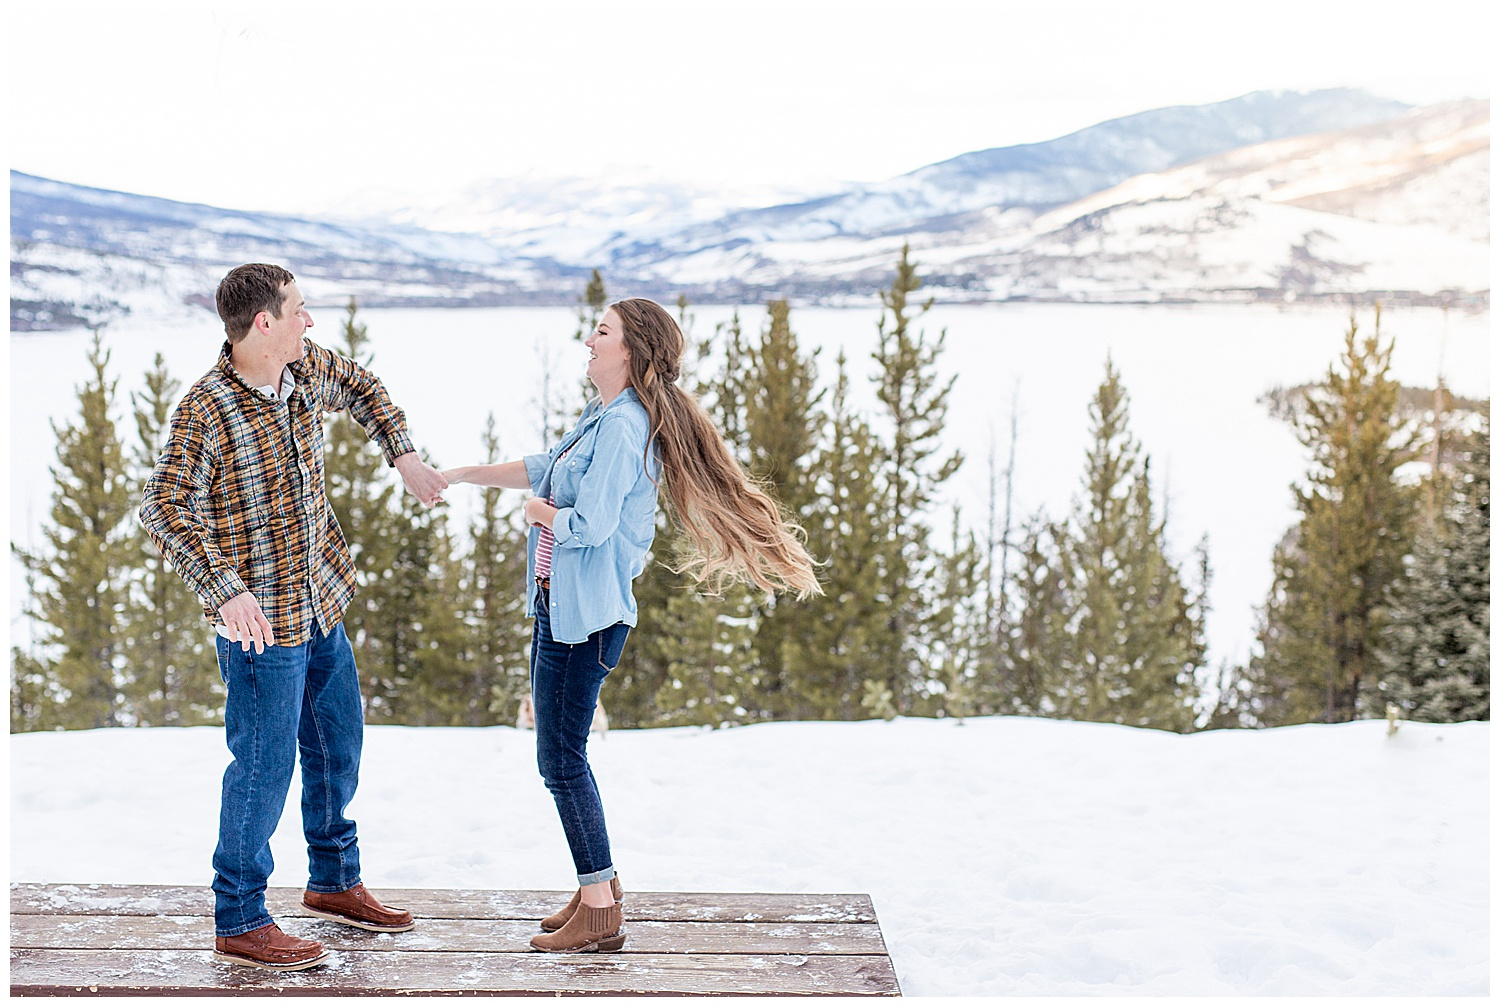 Winter-Breckenridge-Colorado-Engagement-Session_0020.jpg